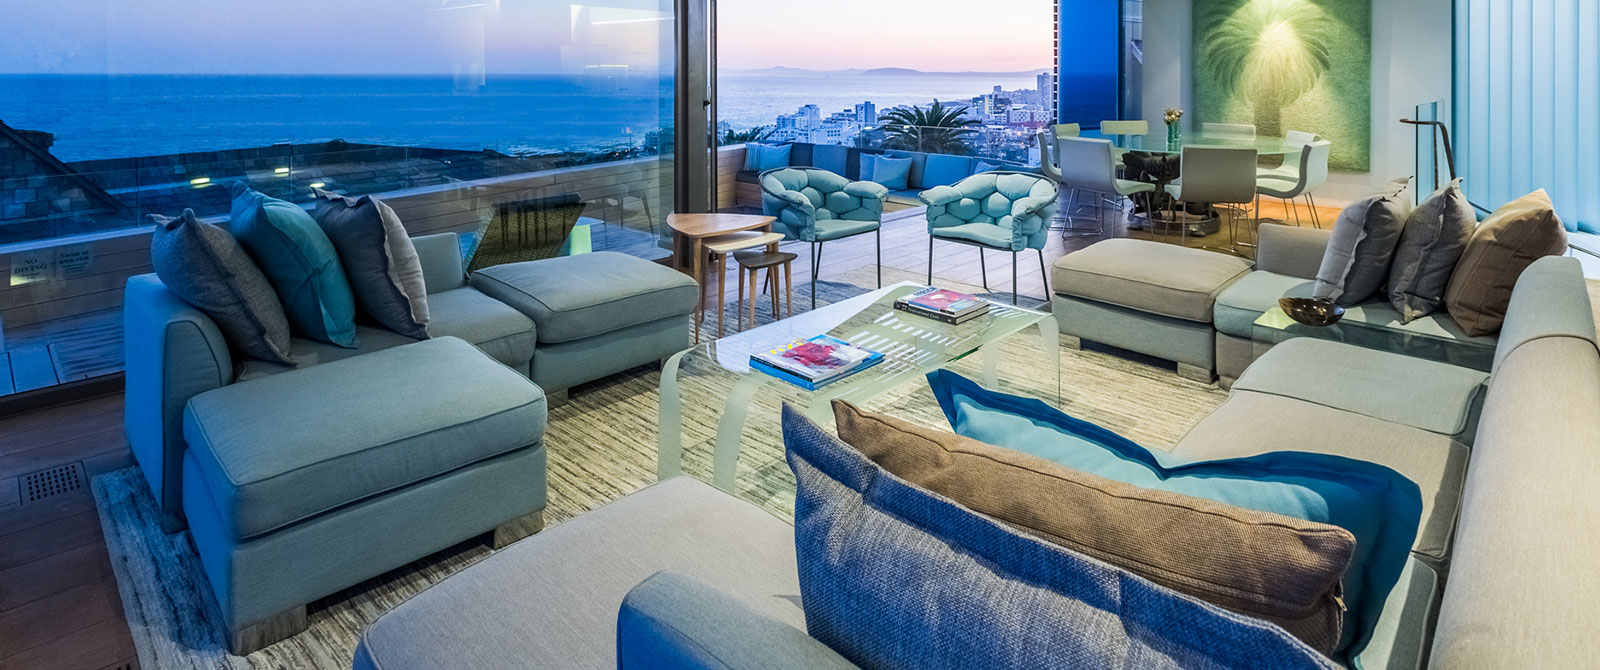 Lounge at Ellerman House South Africa - Cape Town Explorer and Family Safari Adventure